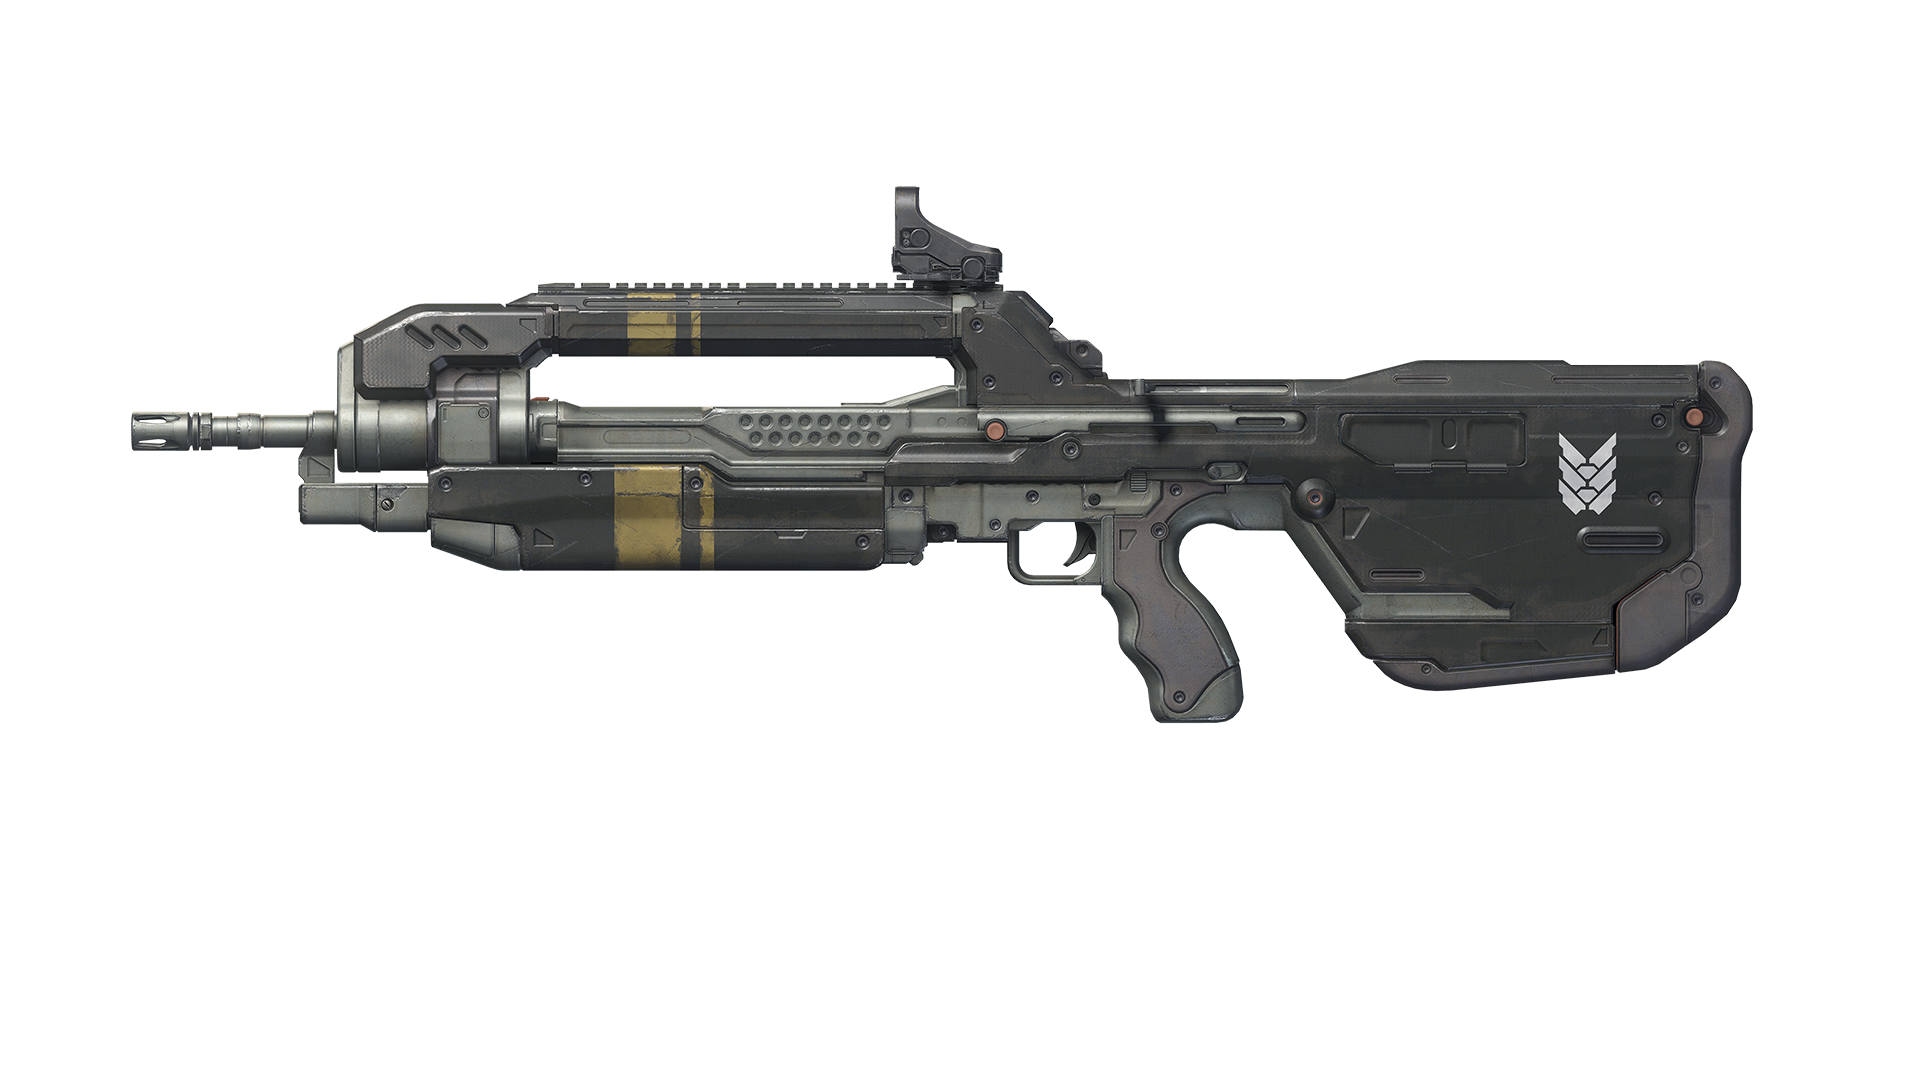 Halo battle rifle png. The resistance legends of